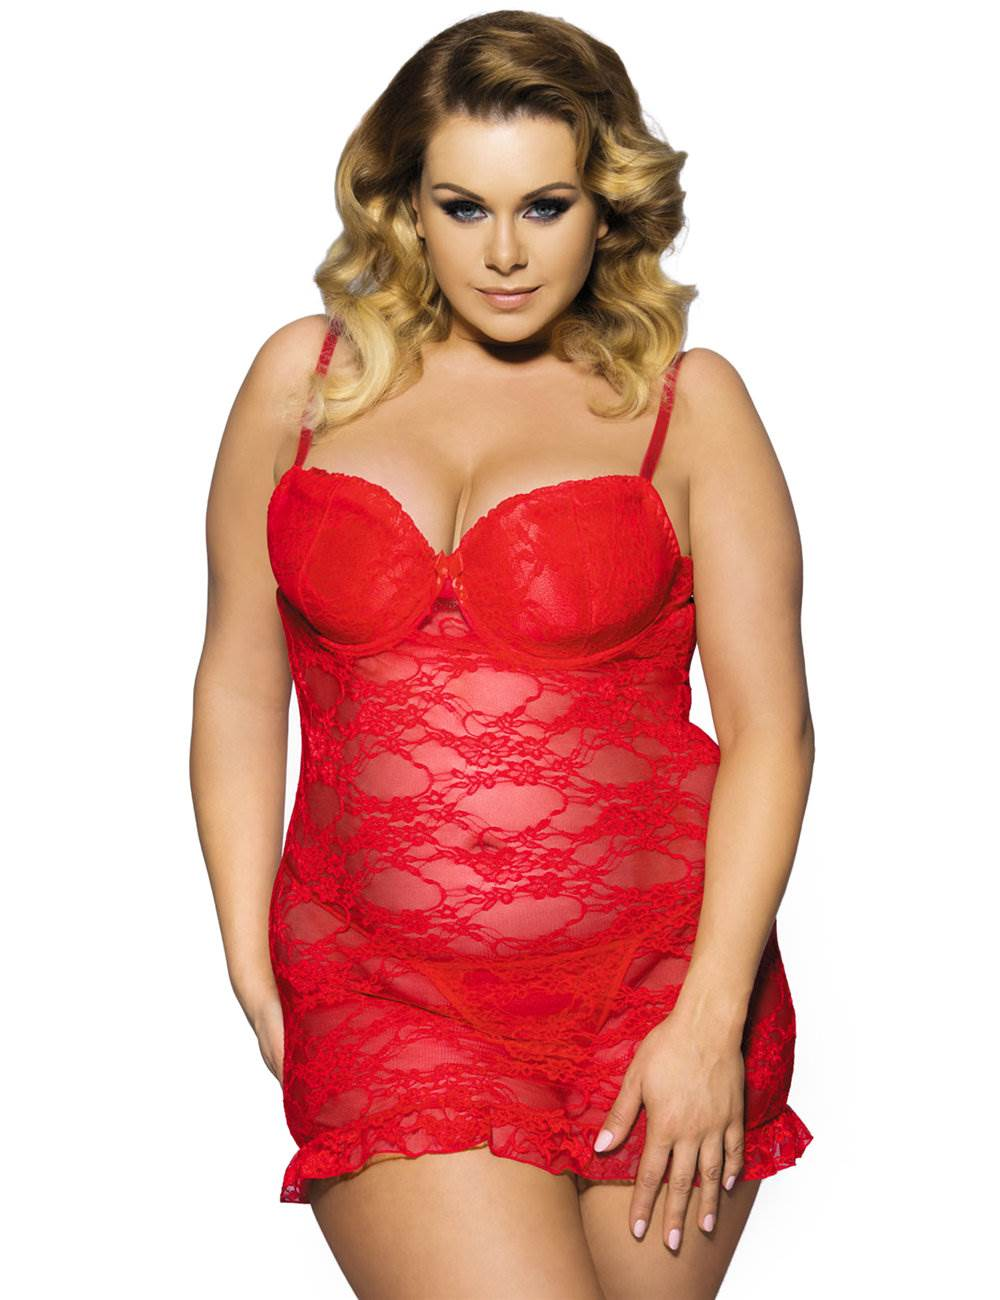 Wholesale Plus Size Lingerie,Plus Size Babydoll & Lingerie For Fat ...